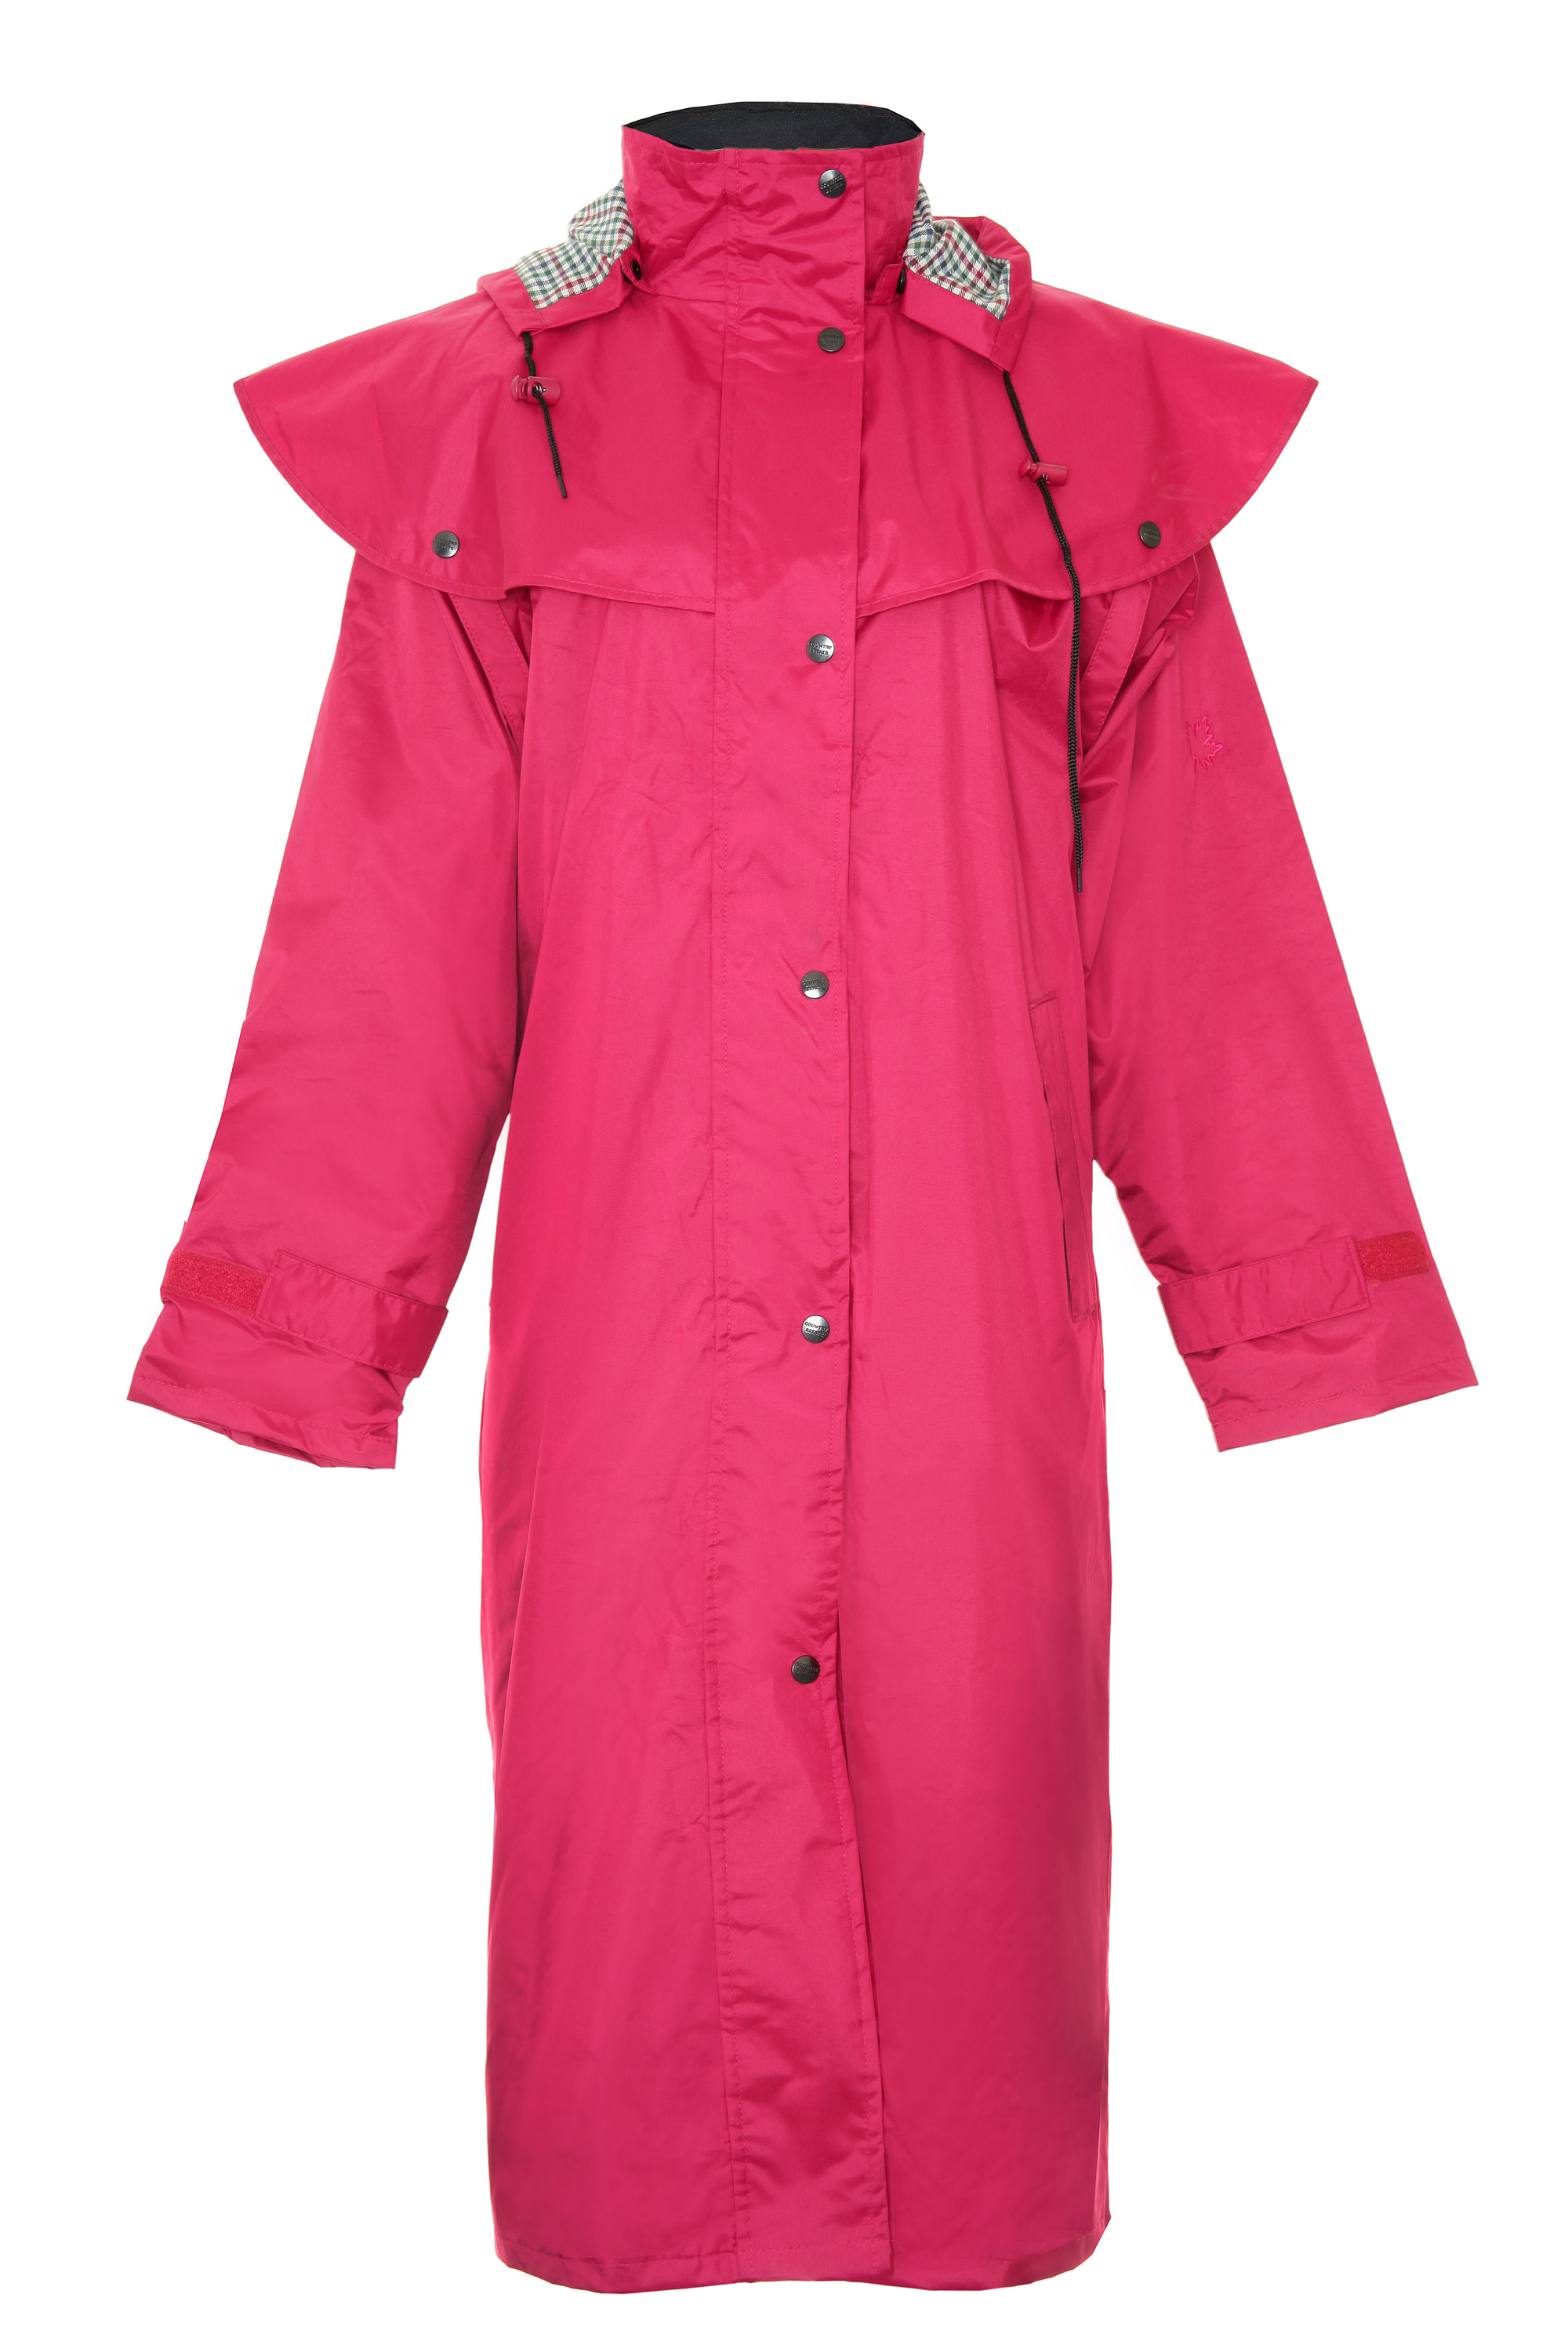 Shop for Women's Rain Jackets at REI - FREE SHIPPING With $50 minimum purchase. Top quality, great selection and expert advice you can trust. % Satisfaction Guarantee.